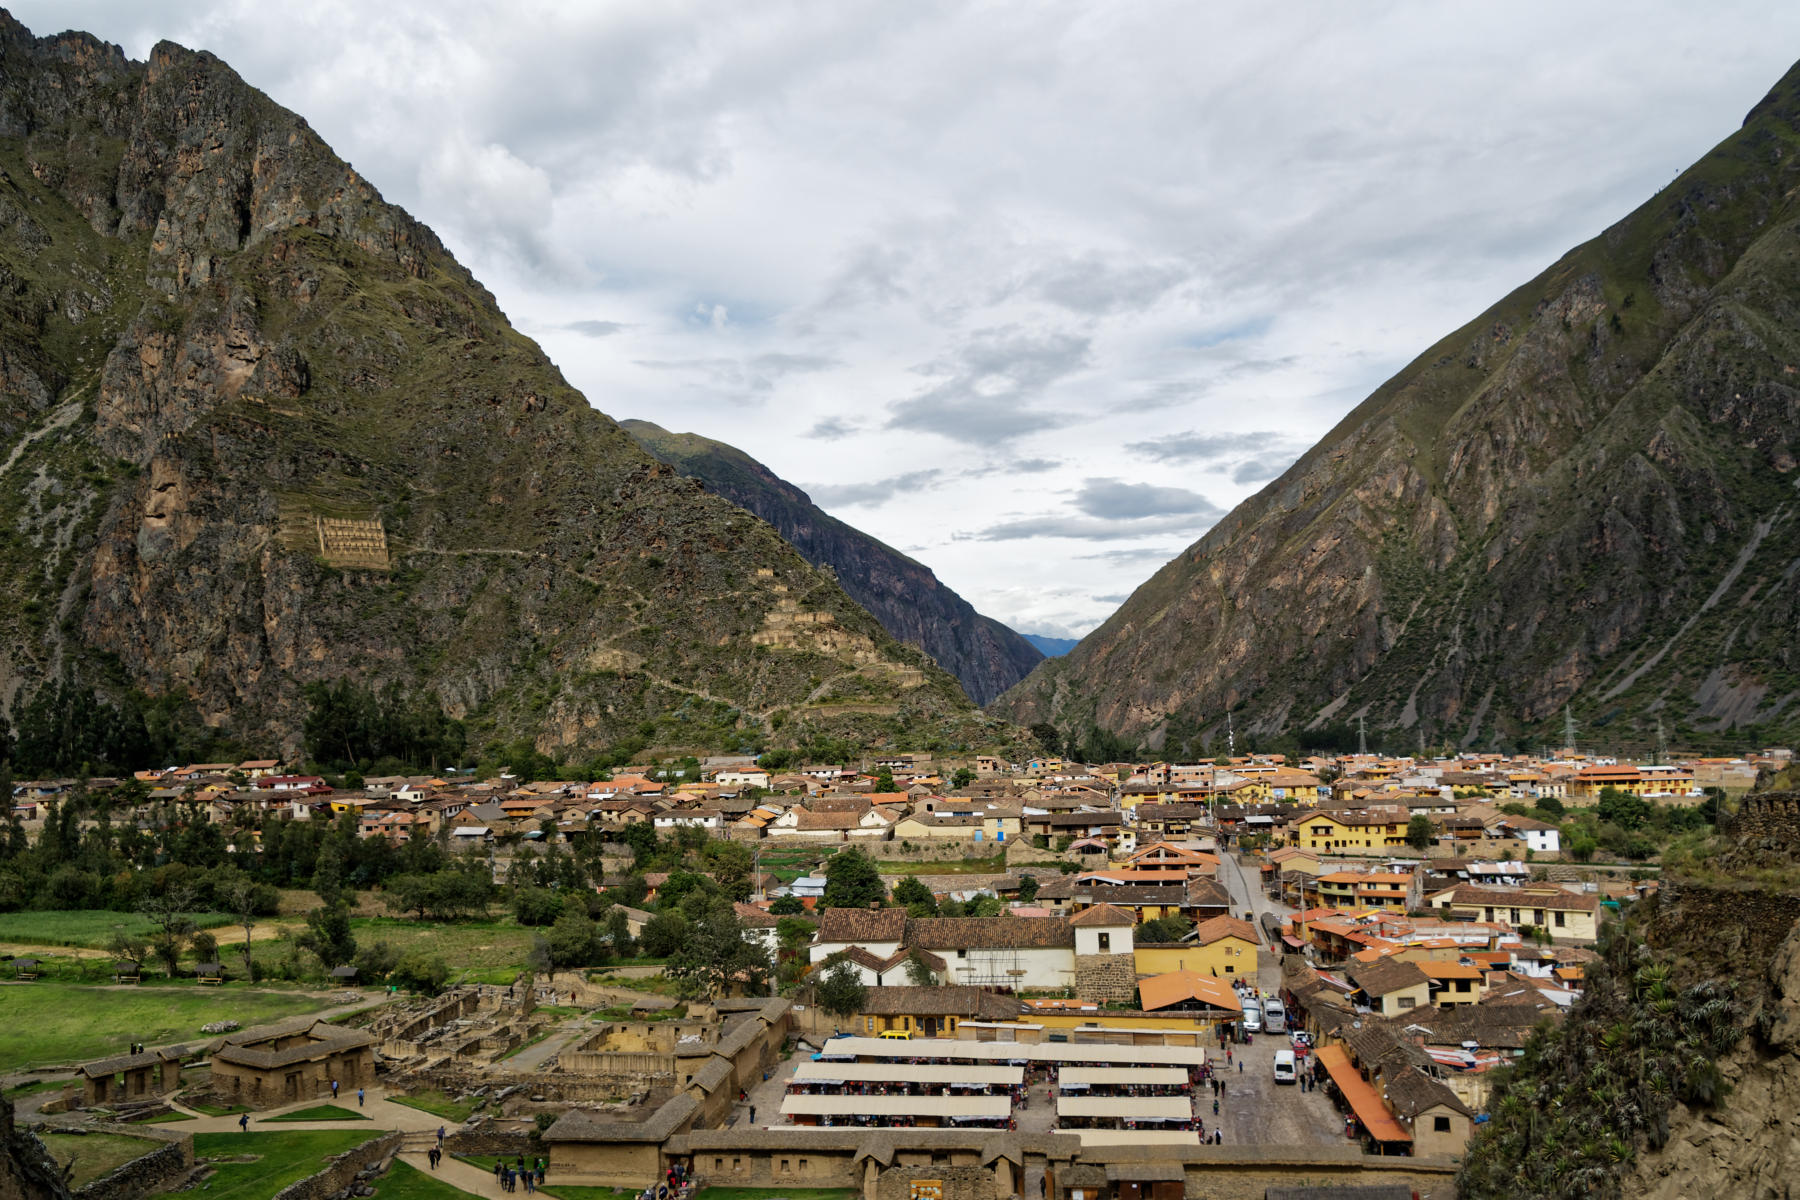 Ollantaytambo seen from the Temple